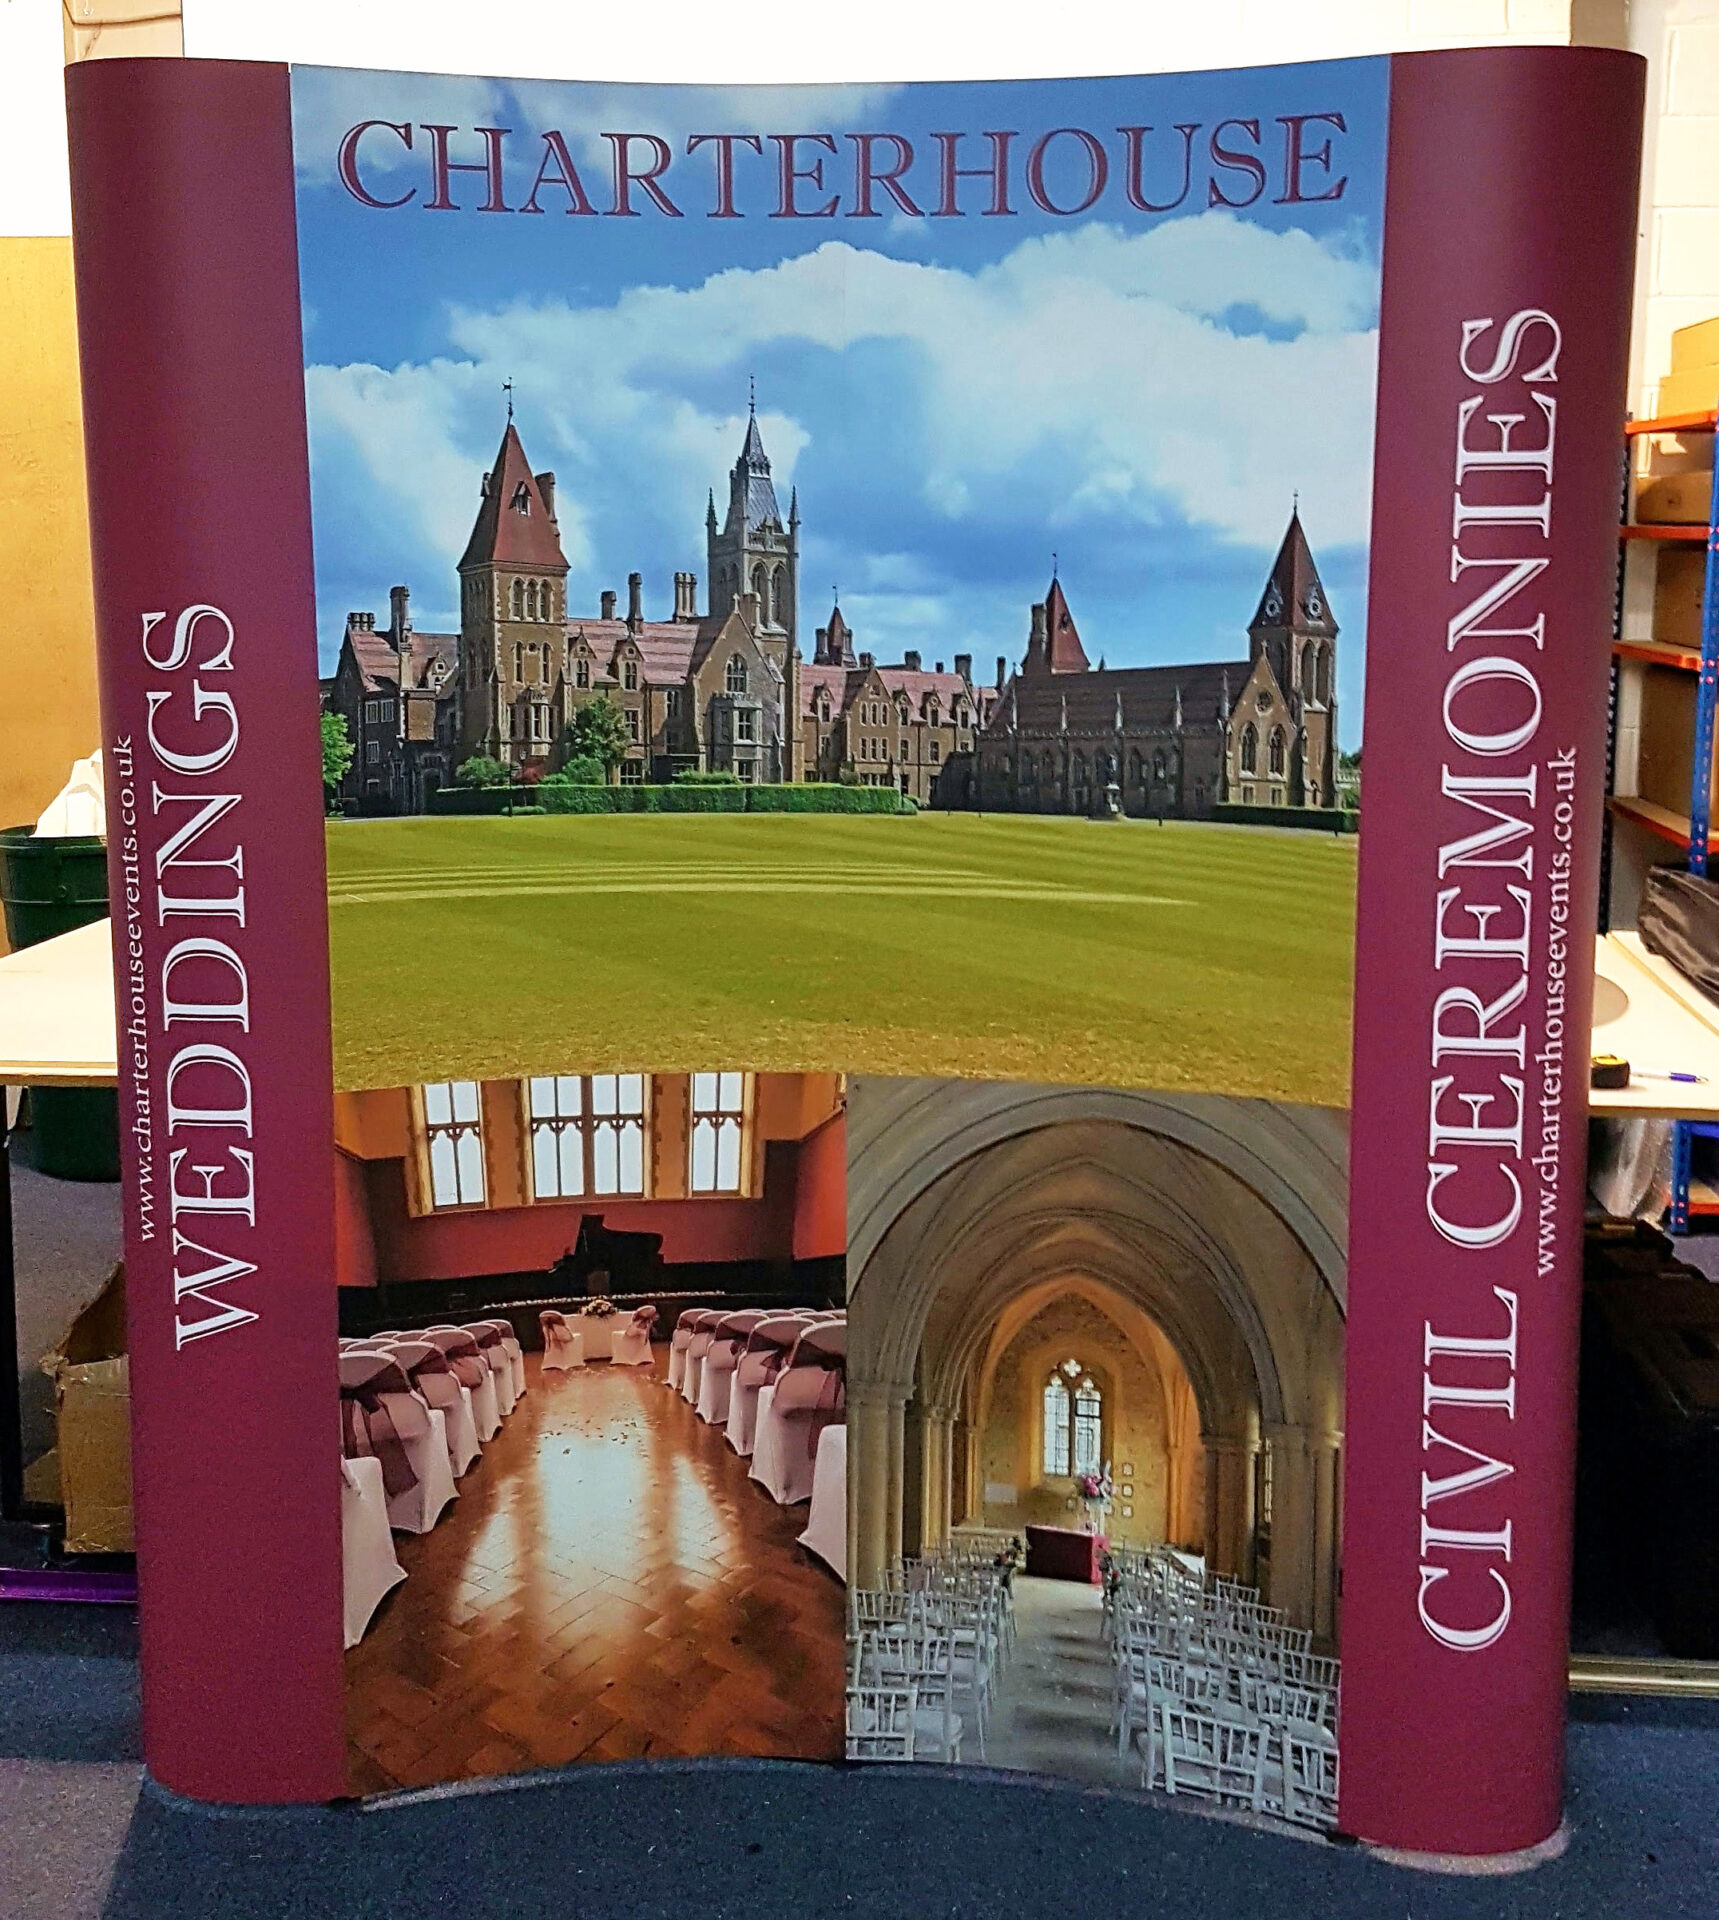 Charterhouse 3x2 Pop Up